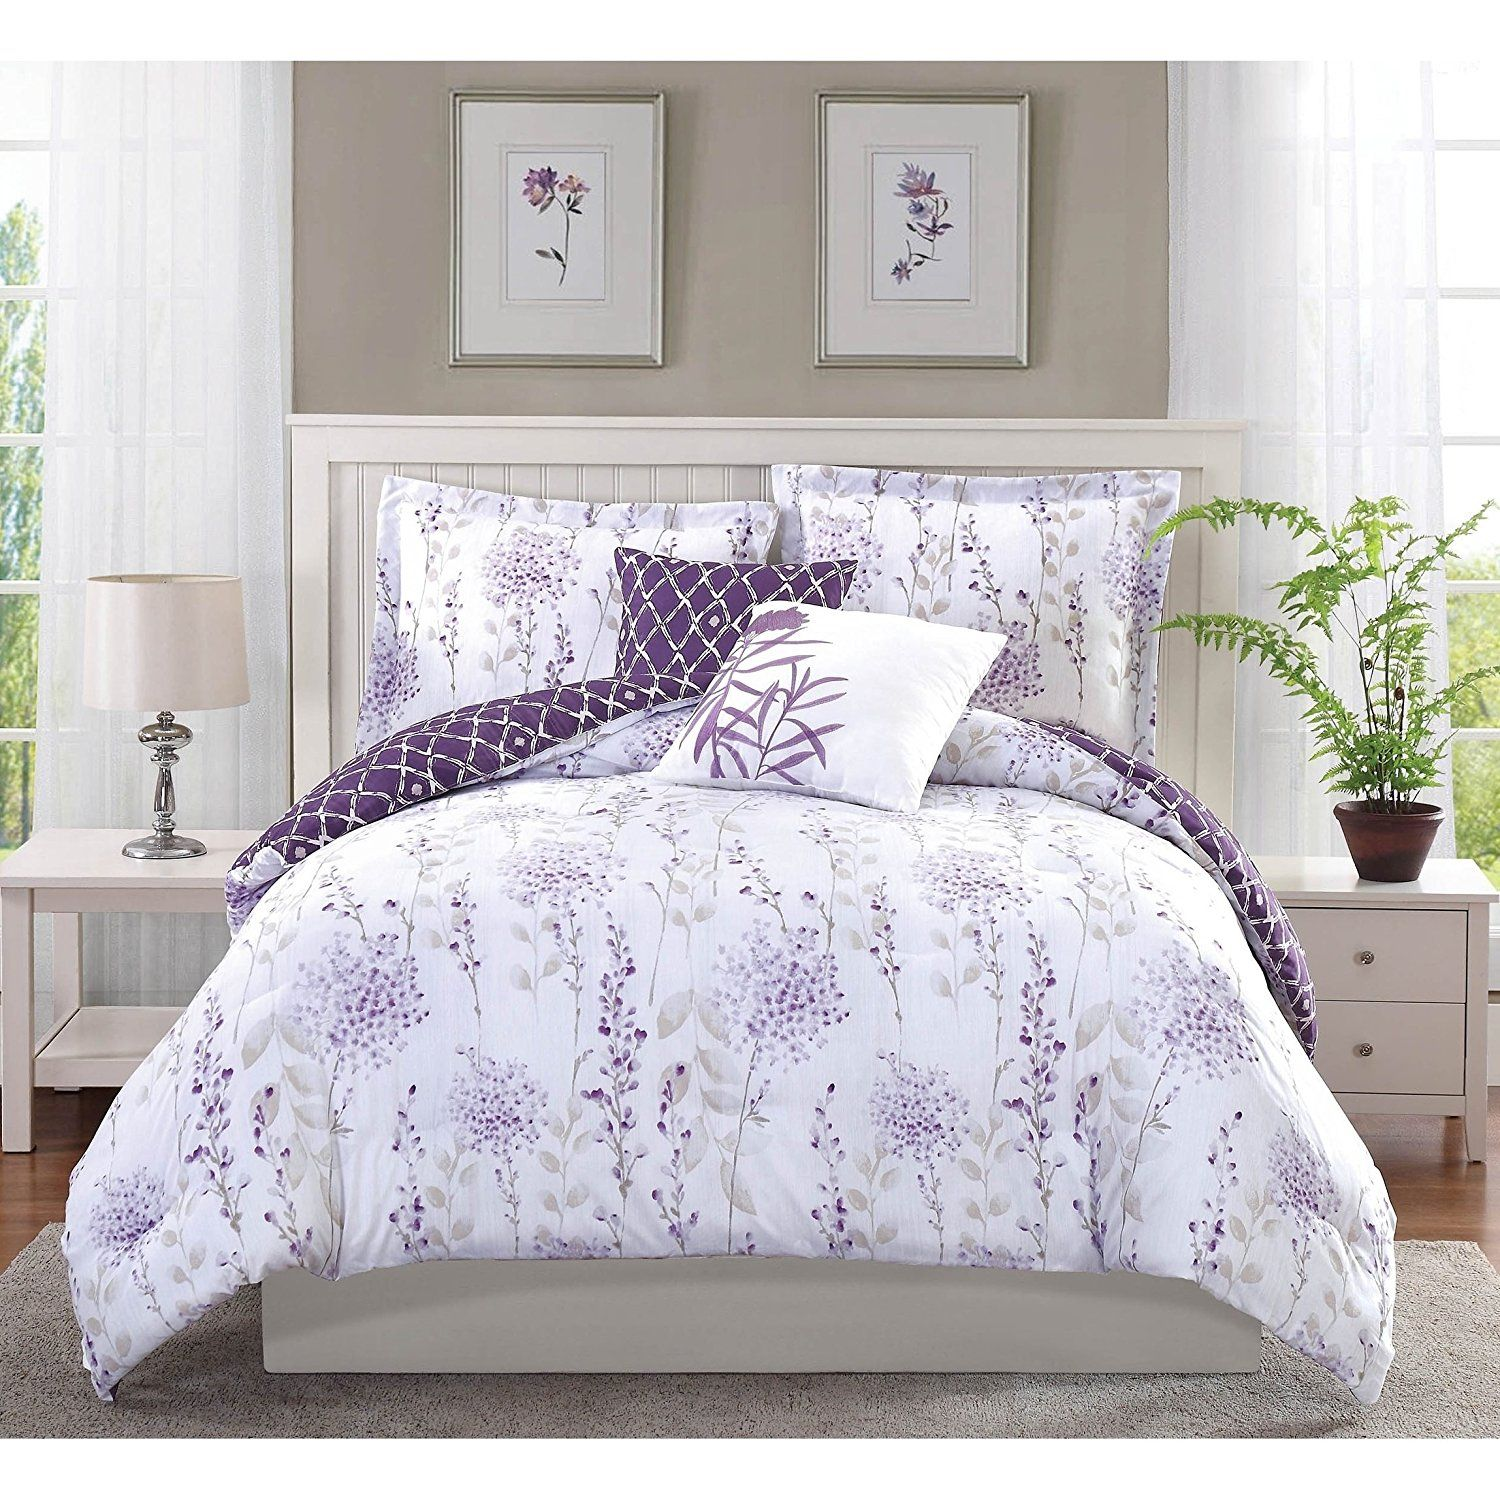 Amazon Com 5 Piece Girls Purple White Lavender Floral Theme